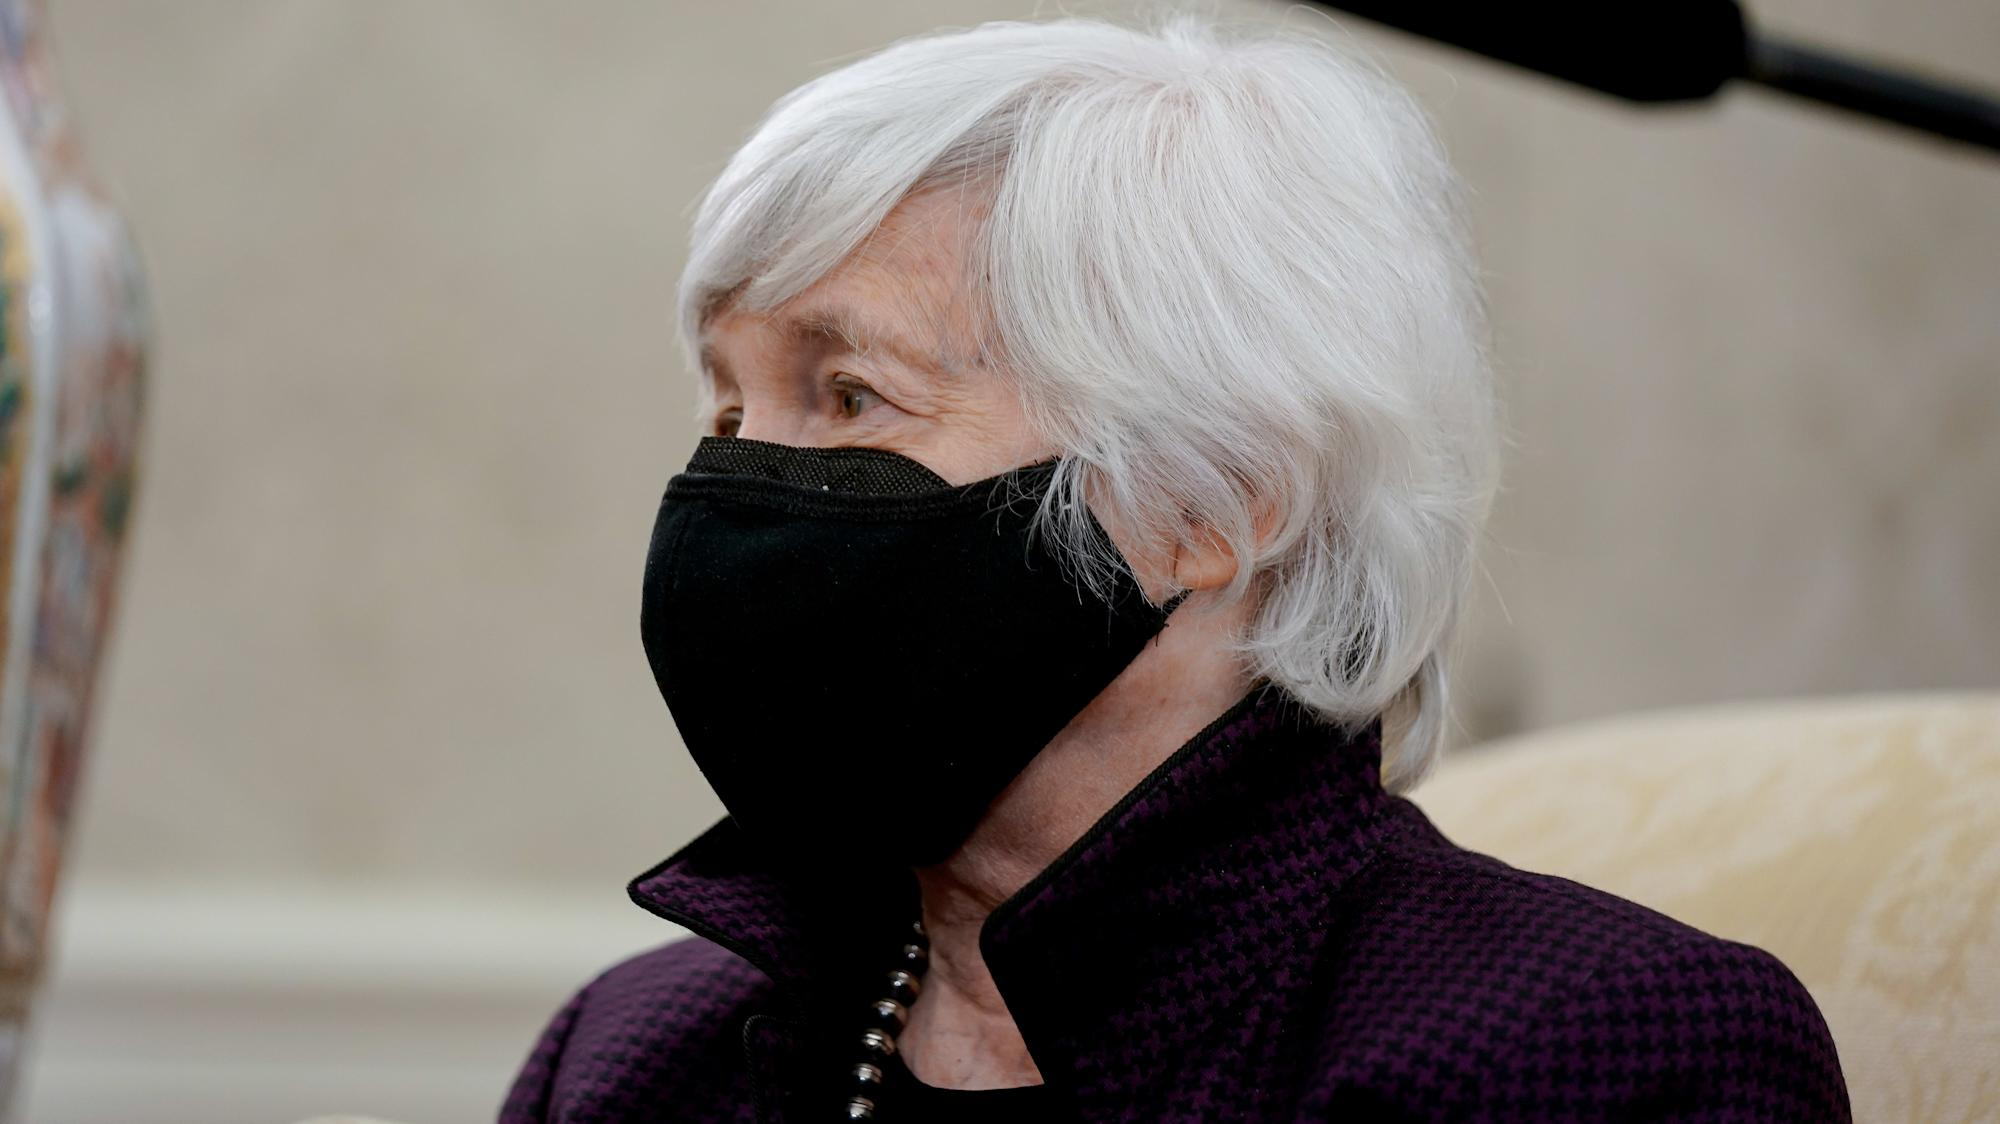 Yellen clarifies inflation remarks after market confusion